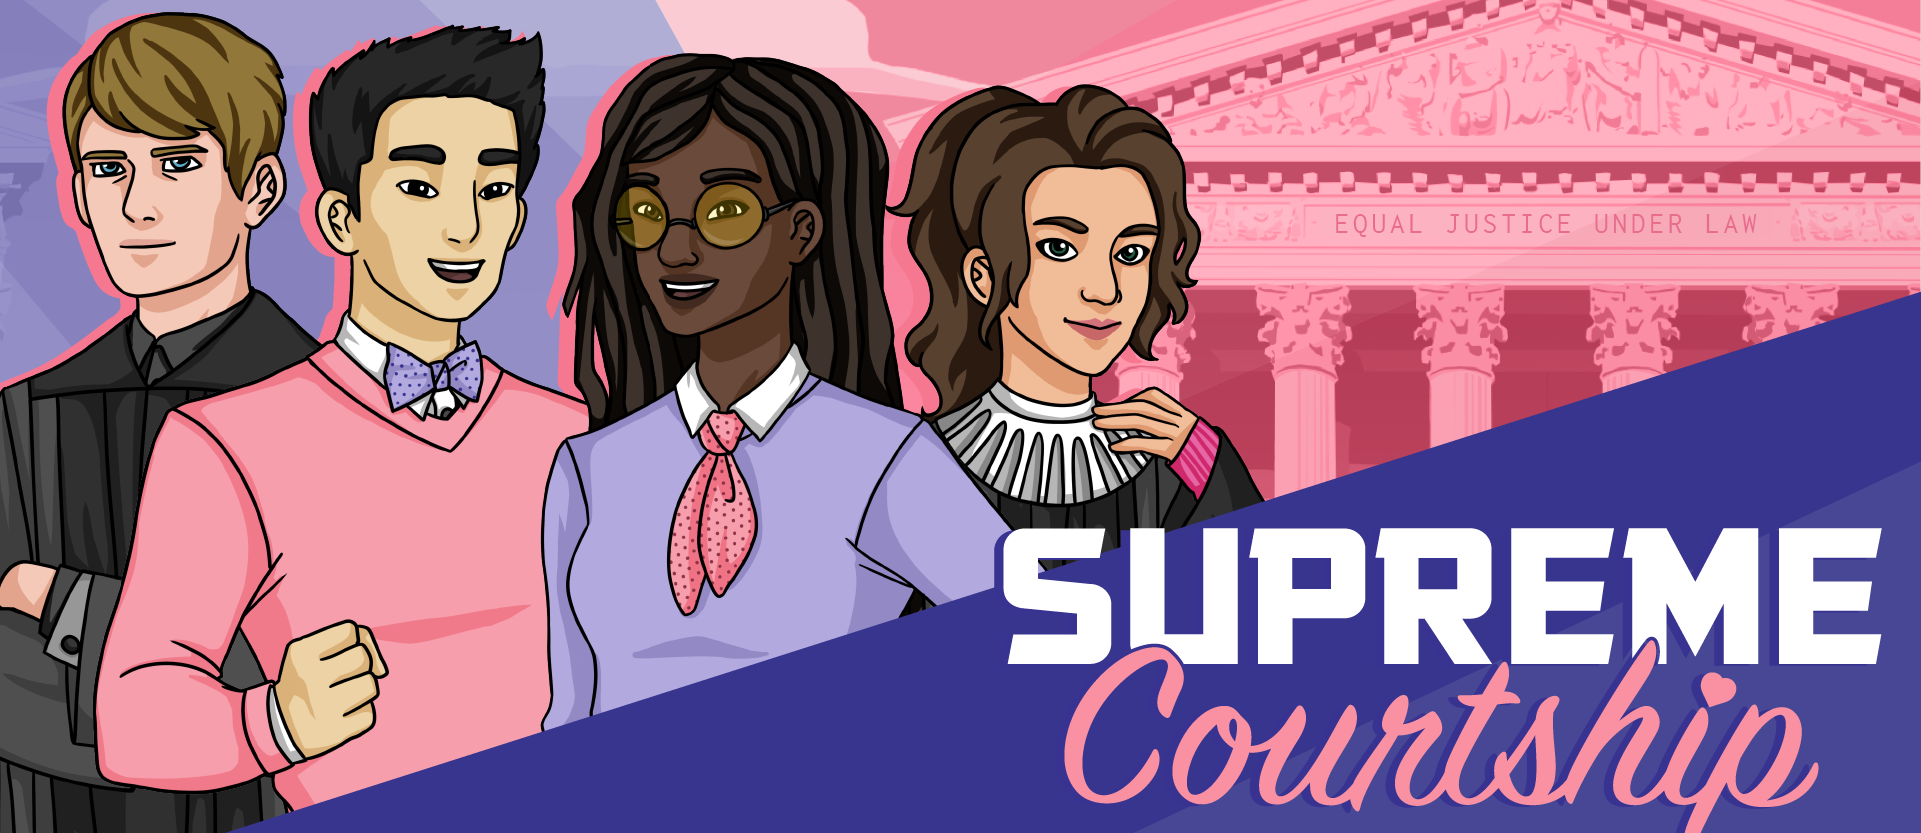 Supreme Courtship: Comedy, Adventure, JUSTICE!